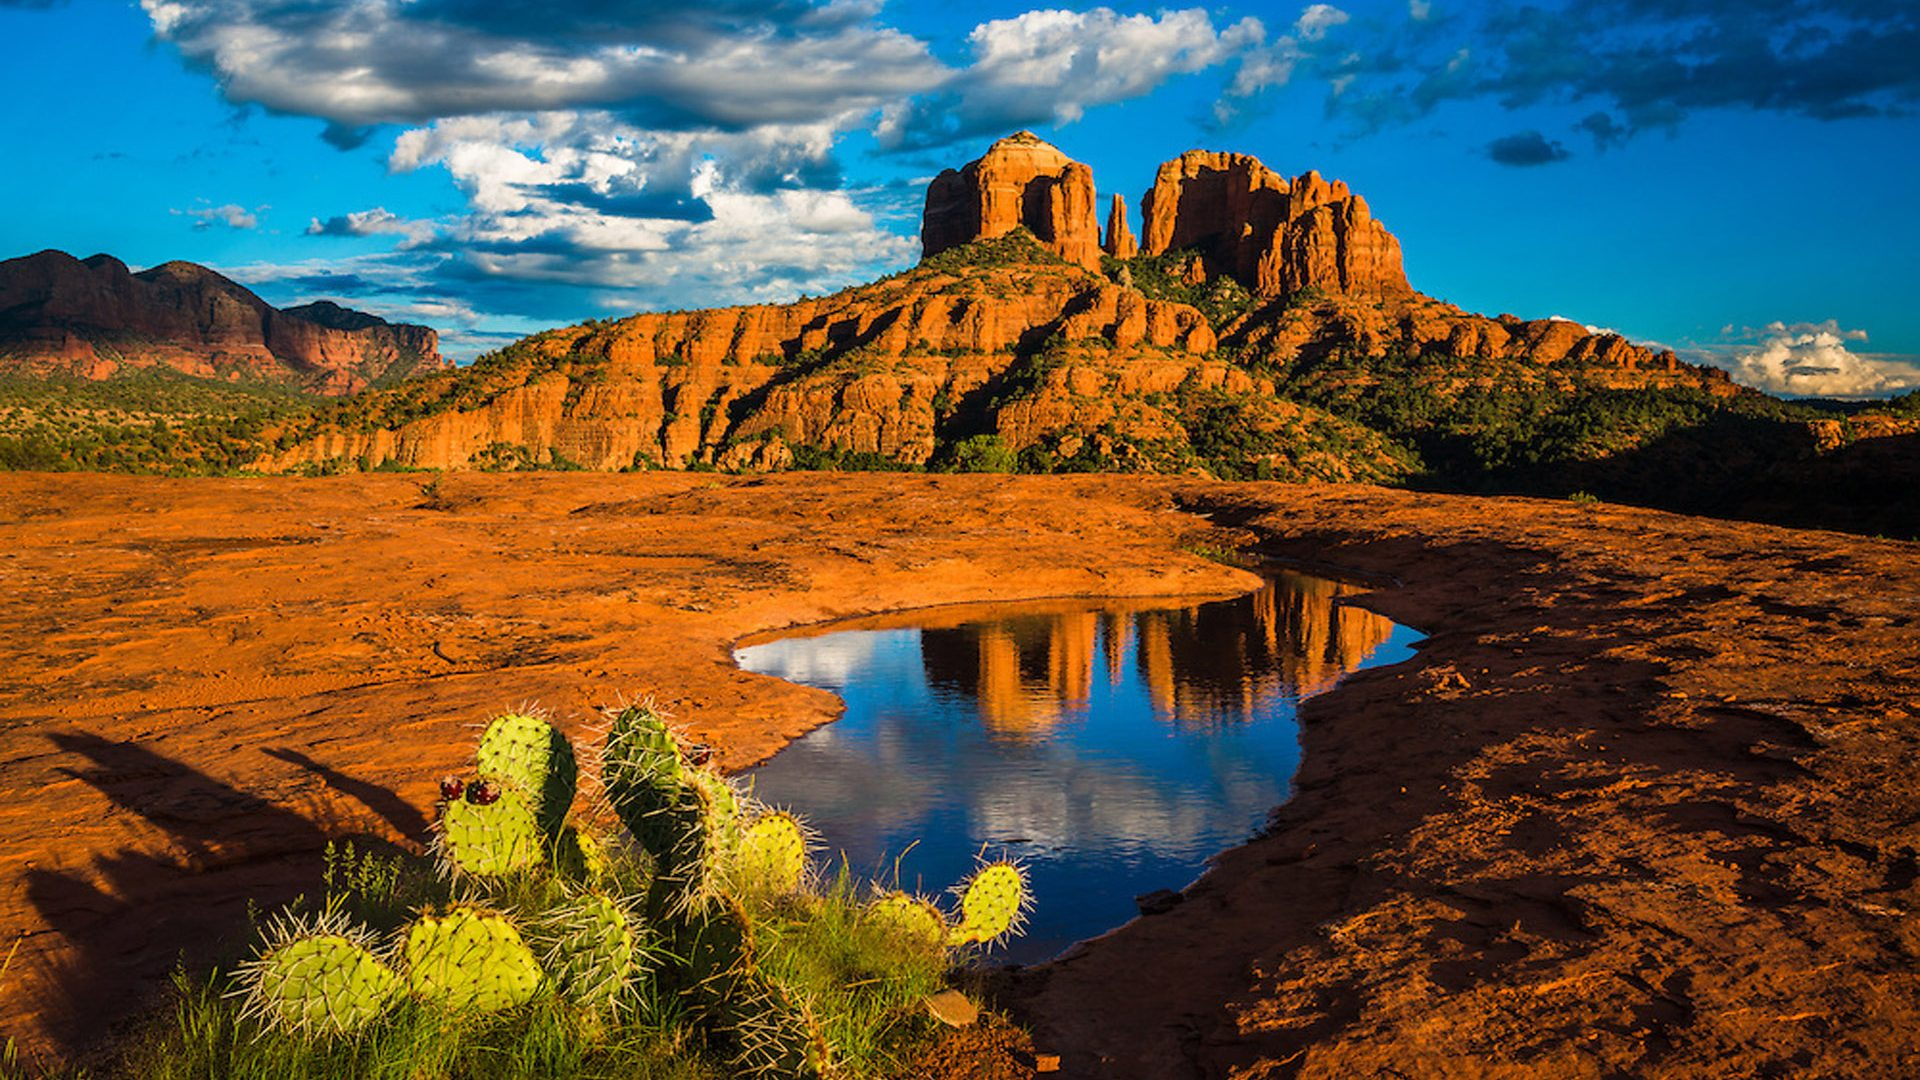 ... -Arizona-United States-Desktop Wallpaper HD free download-1920×1200